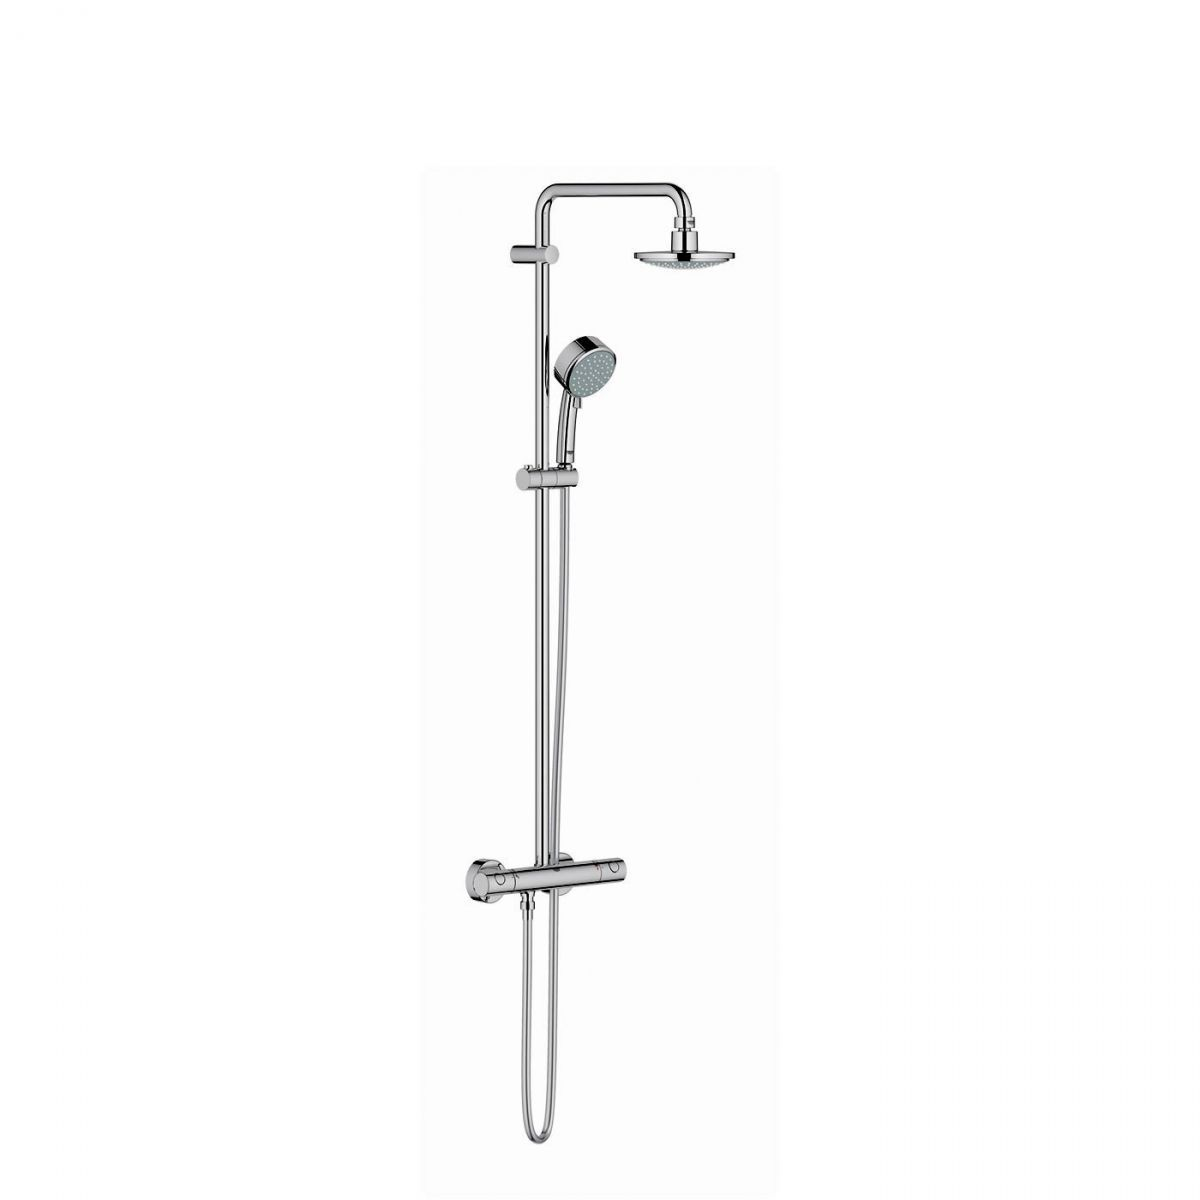 Grohe Tempesta Cosmo Shower System 27922000 Uk Bathrooms Mikveh Pinterest Shower Systems